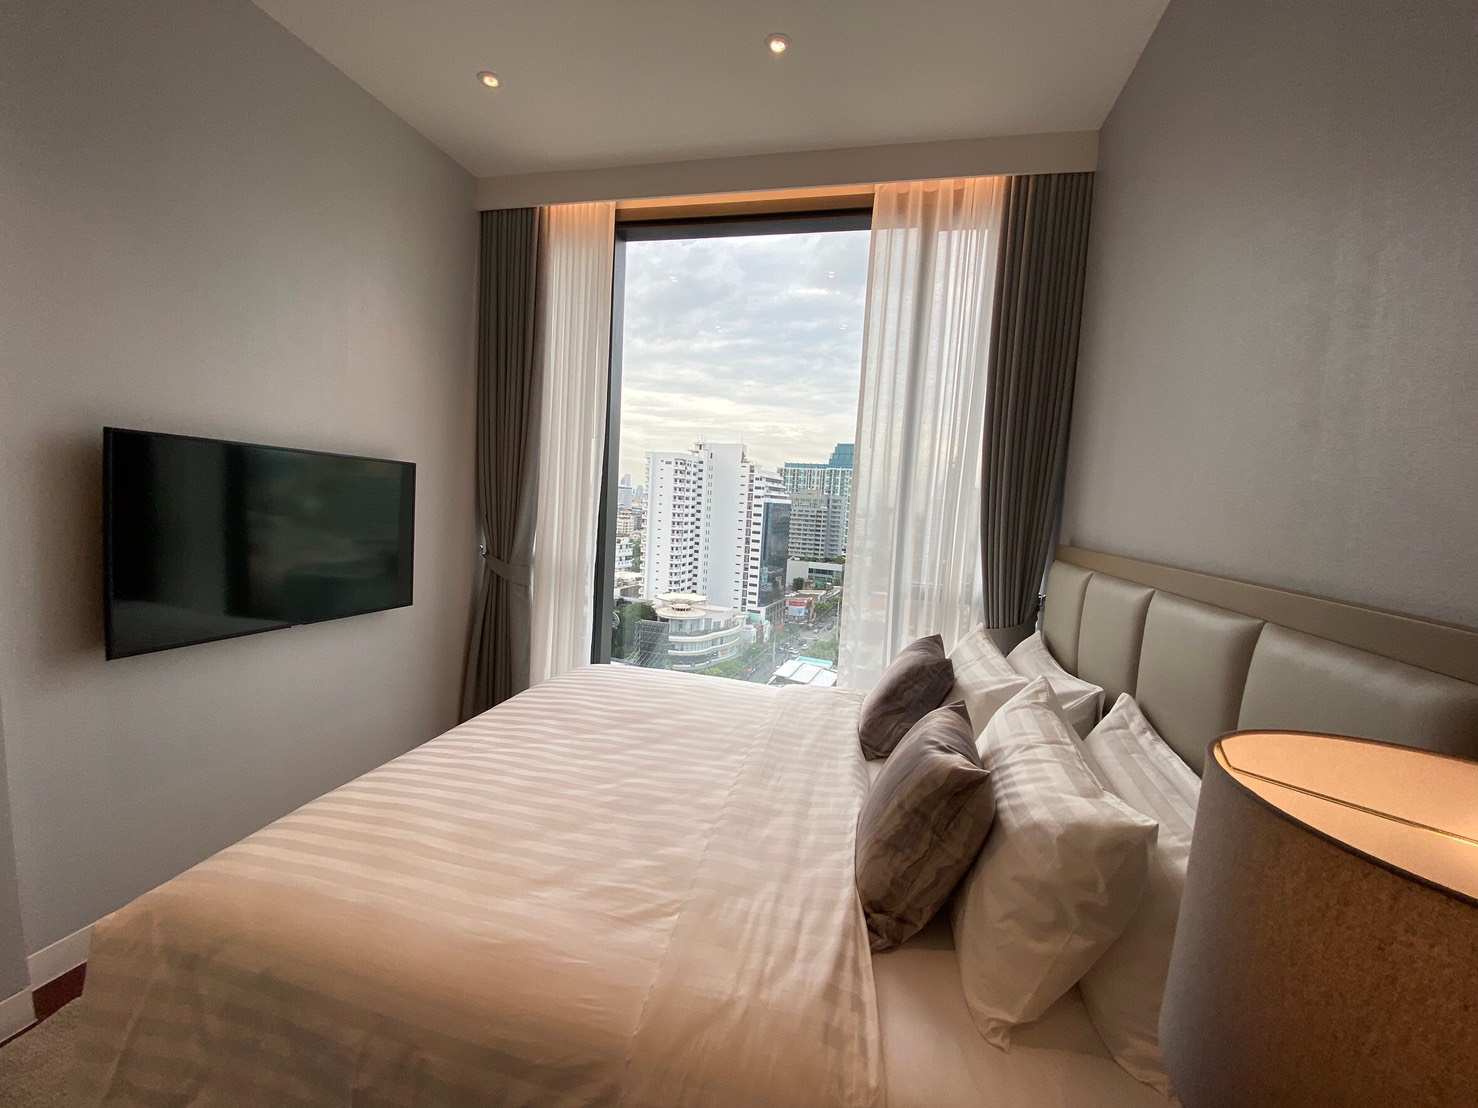 For RentCondoSukhumvit, Asoke, Thonglor : KHUN BY YOO good price for rent in the heart of Thonglor (full 100% commission charge, the agent hurriedly release it)